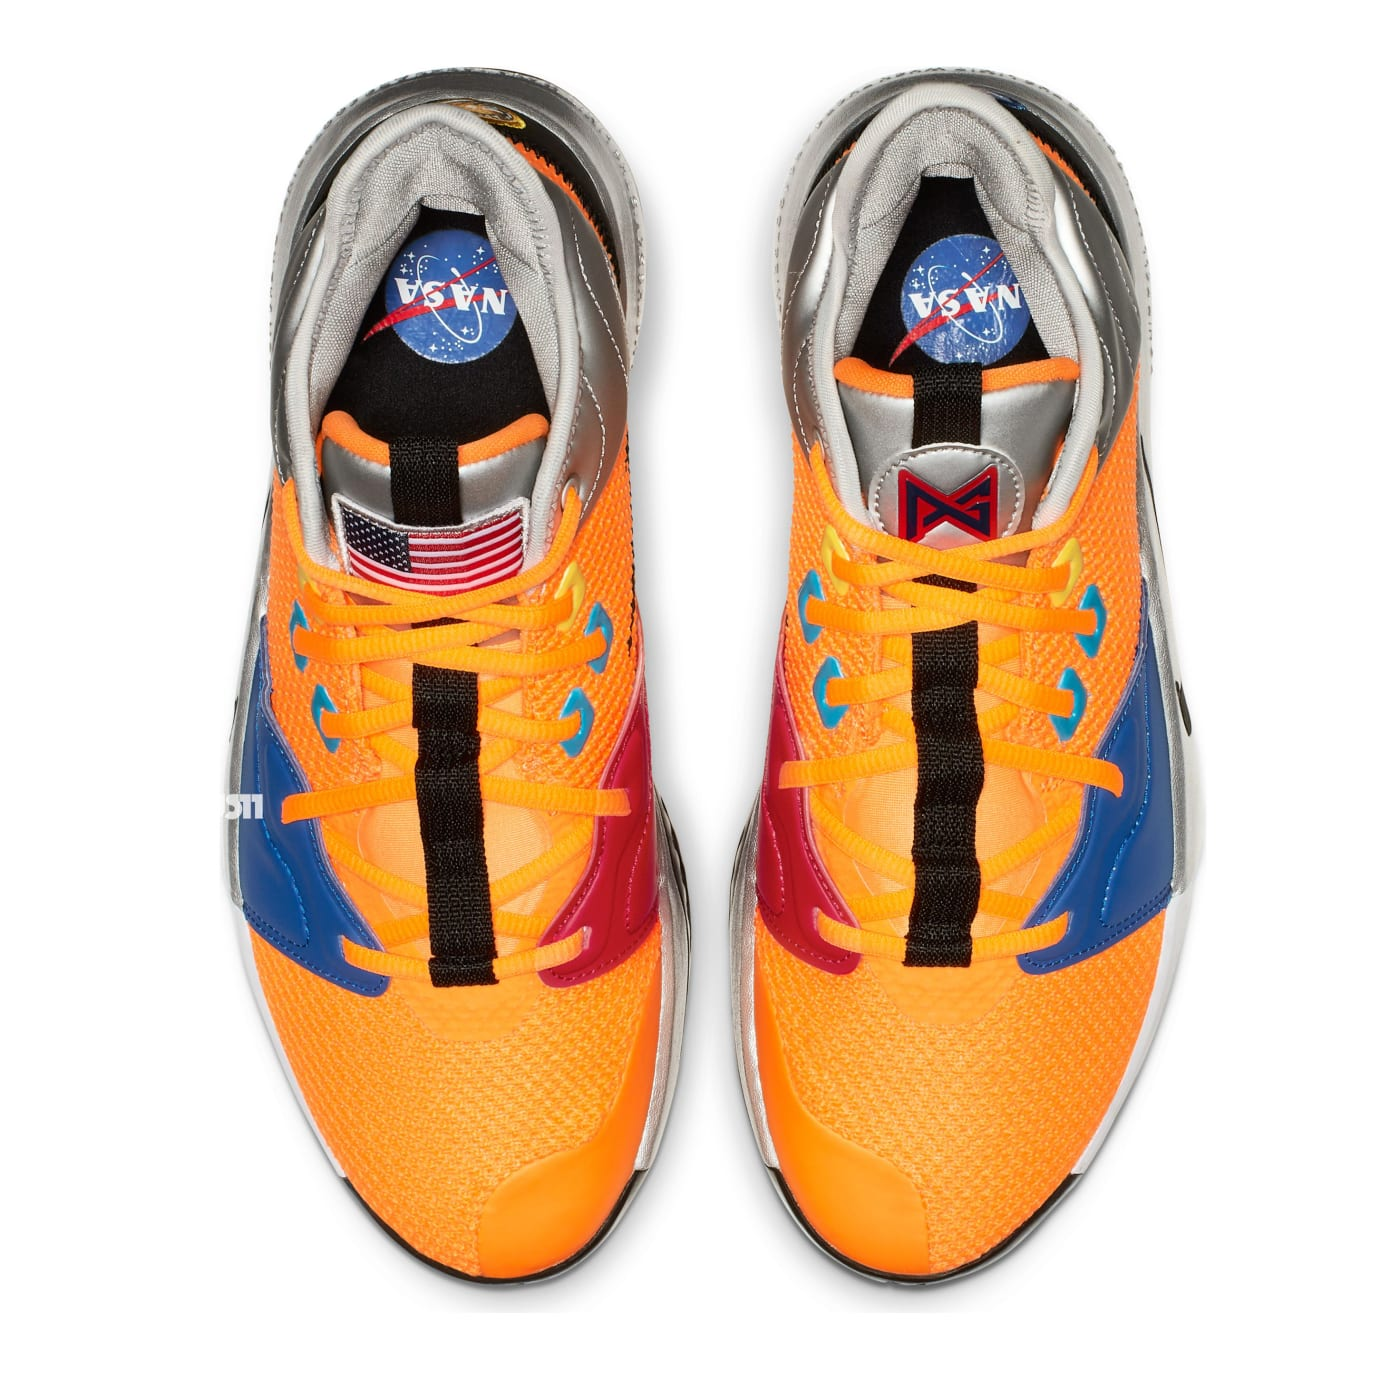 Nike PG 3 'NASA' Total Orange/Black-Metallic Silver (Top)